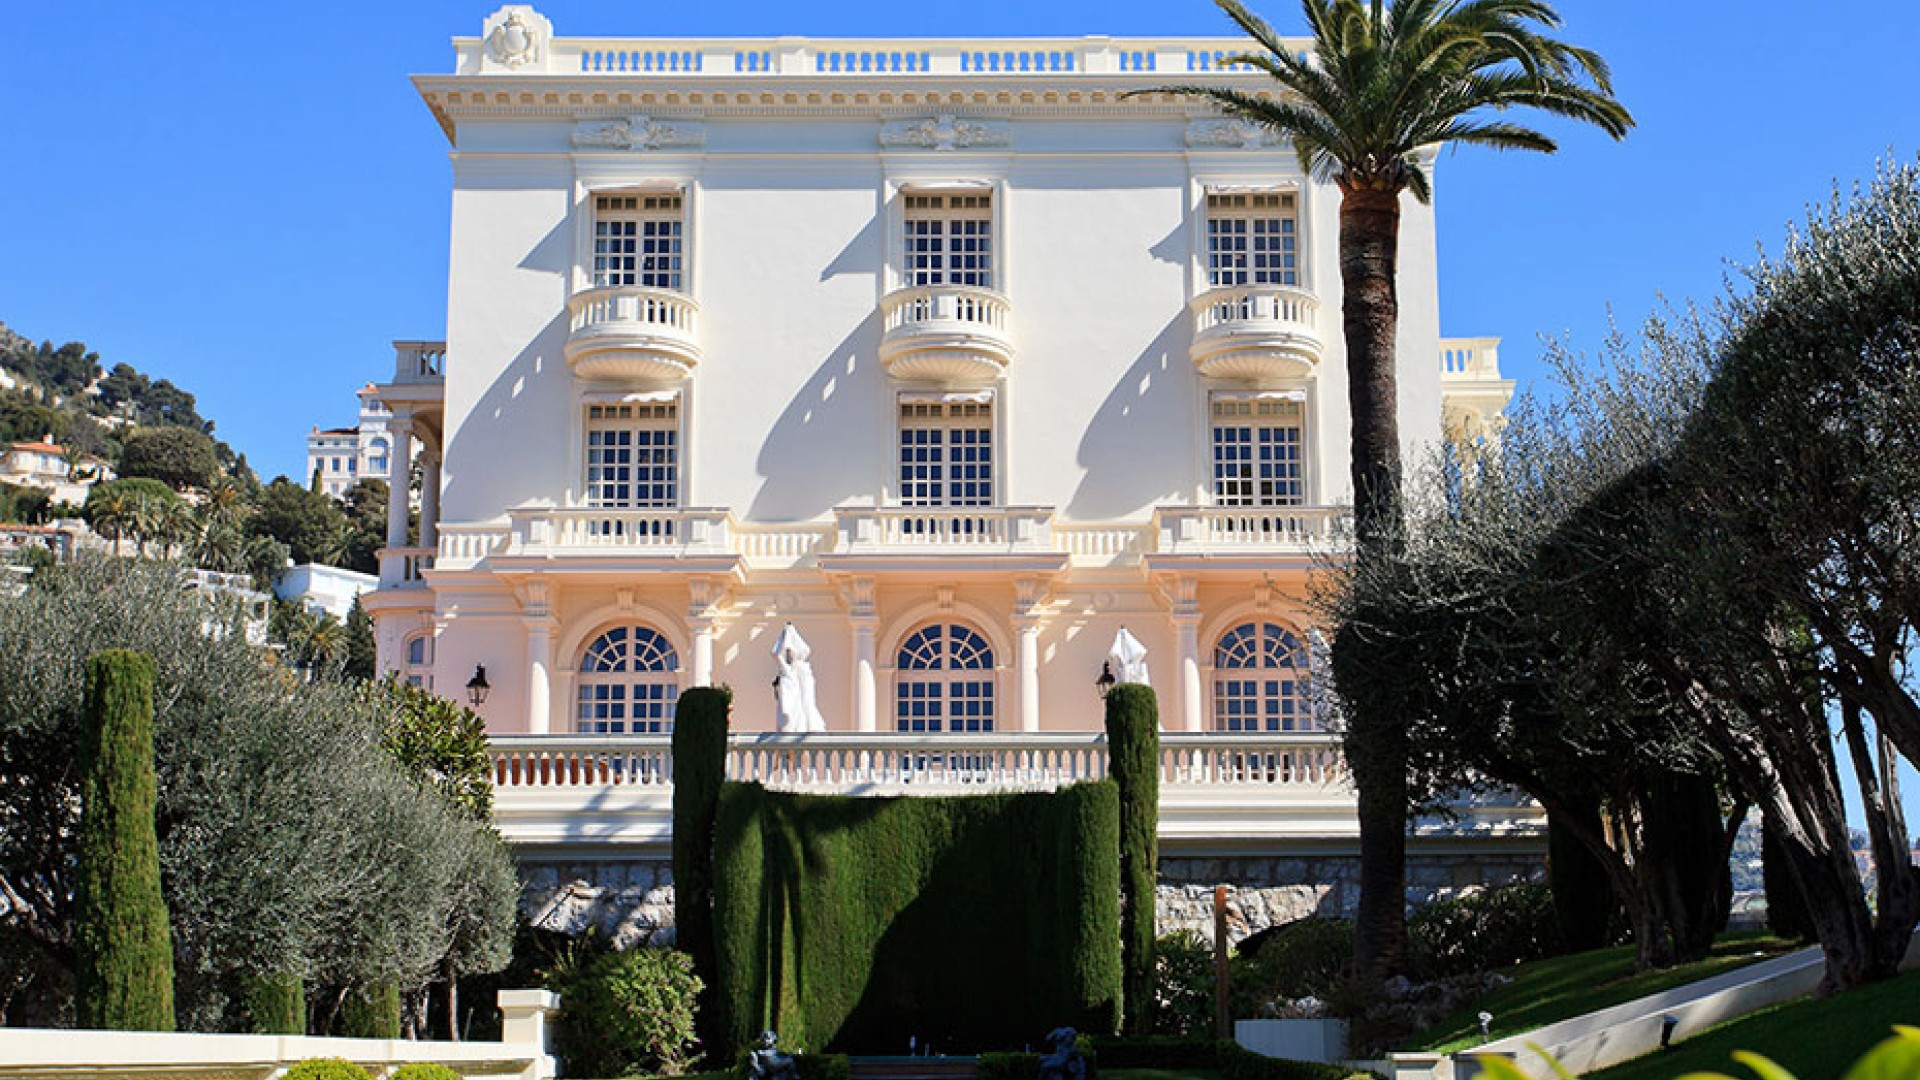 monte carlo helicopter with The Most Luxurious Villas To Rent For The Monaco Grand Prix on The Monte Carlo Operas 20132014 Season together with 45626 furthermore Monaco Monte Carlo Nice Eze Village likewise Ross Cherry Bomb Caprice also Propertymap.